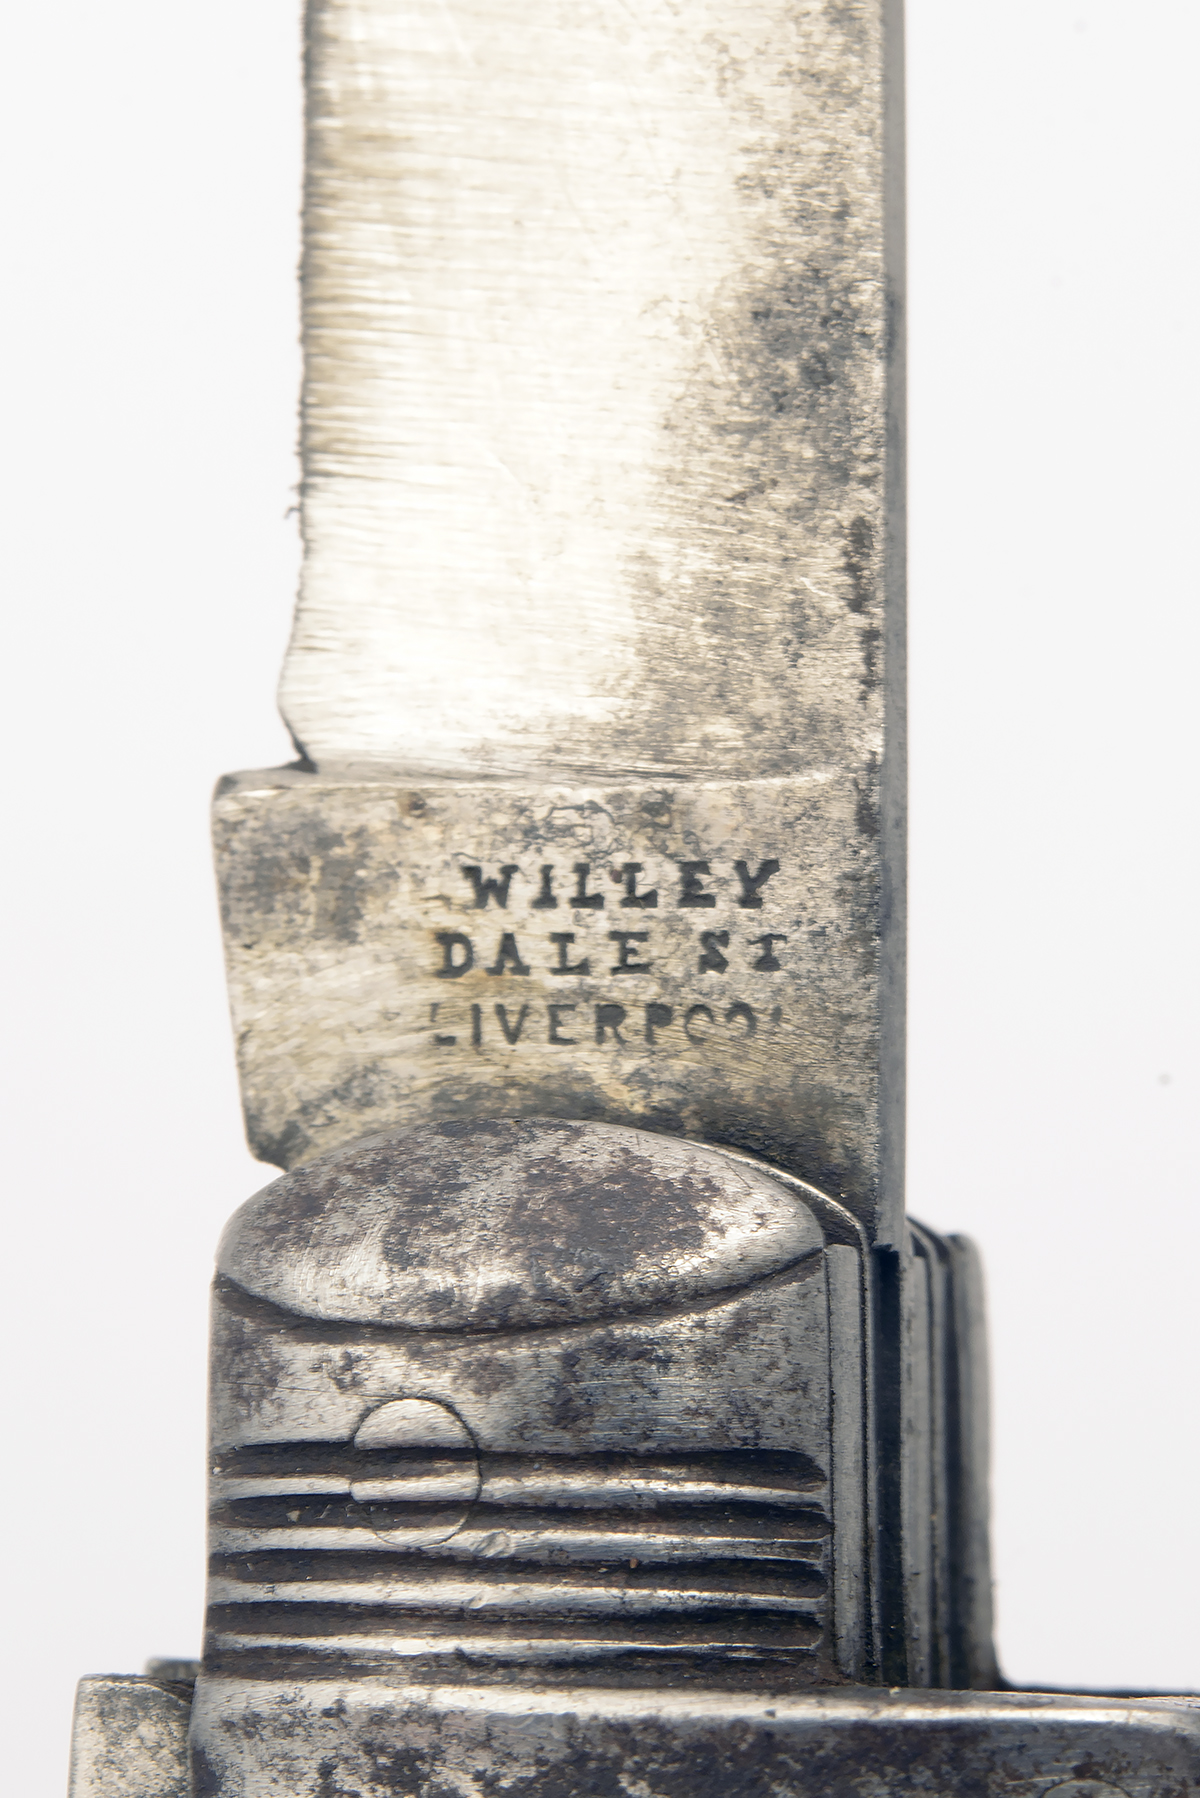 WILLEY, LIVERPOOL A SLIP-CASED VICTORIAN COACHMAN'S POCKET-KNIFE, circa 1880 and with 16 functions - Image 3 of 3